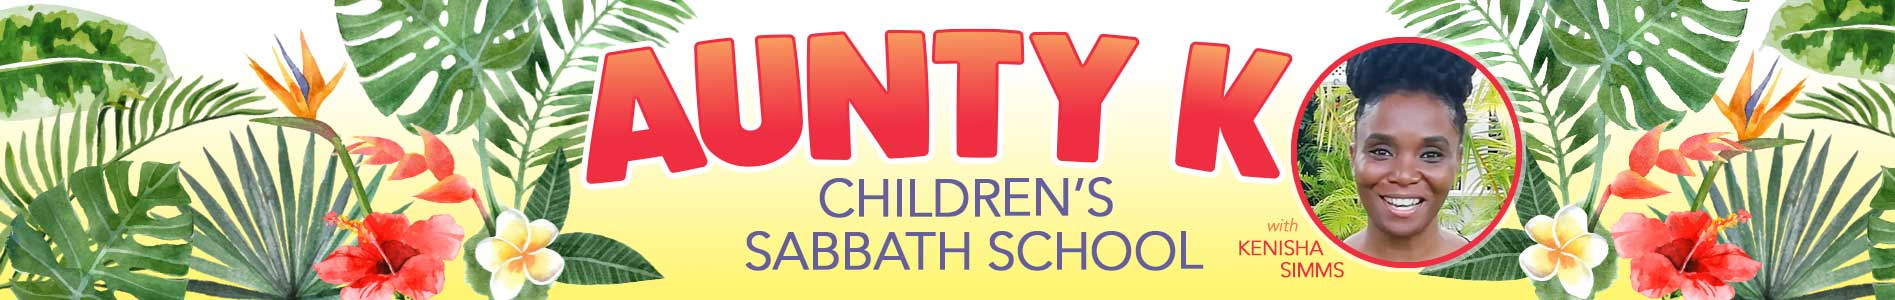 AUnty K Children's Sabbath School program header. art by shutterstock.com/Mart